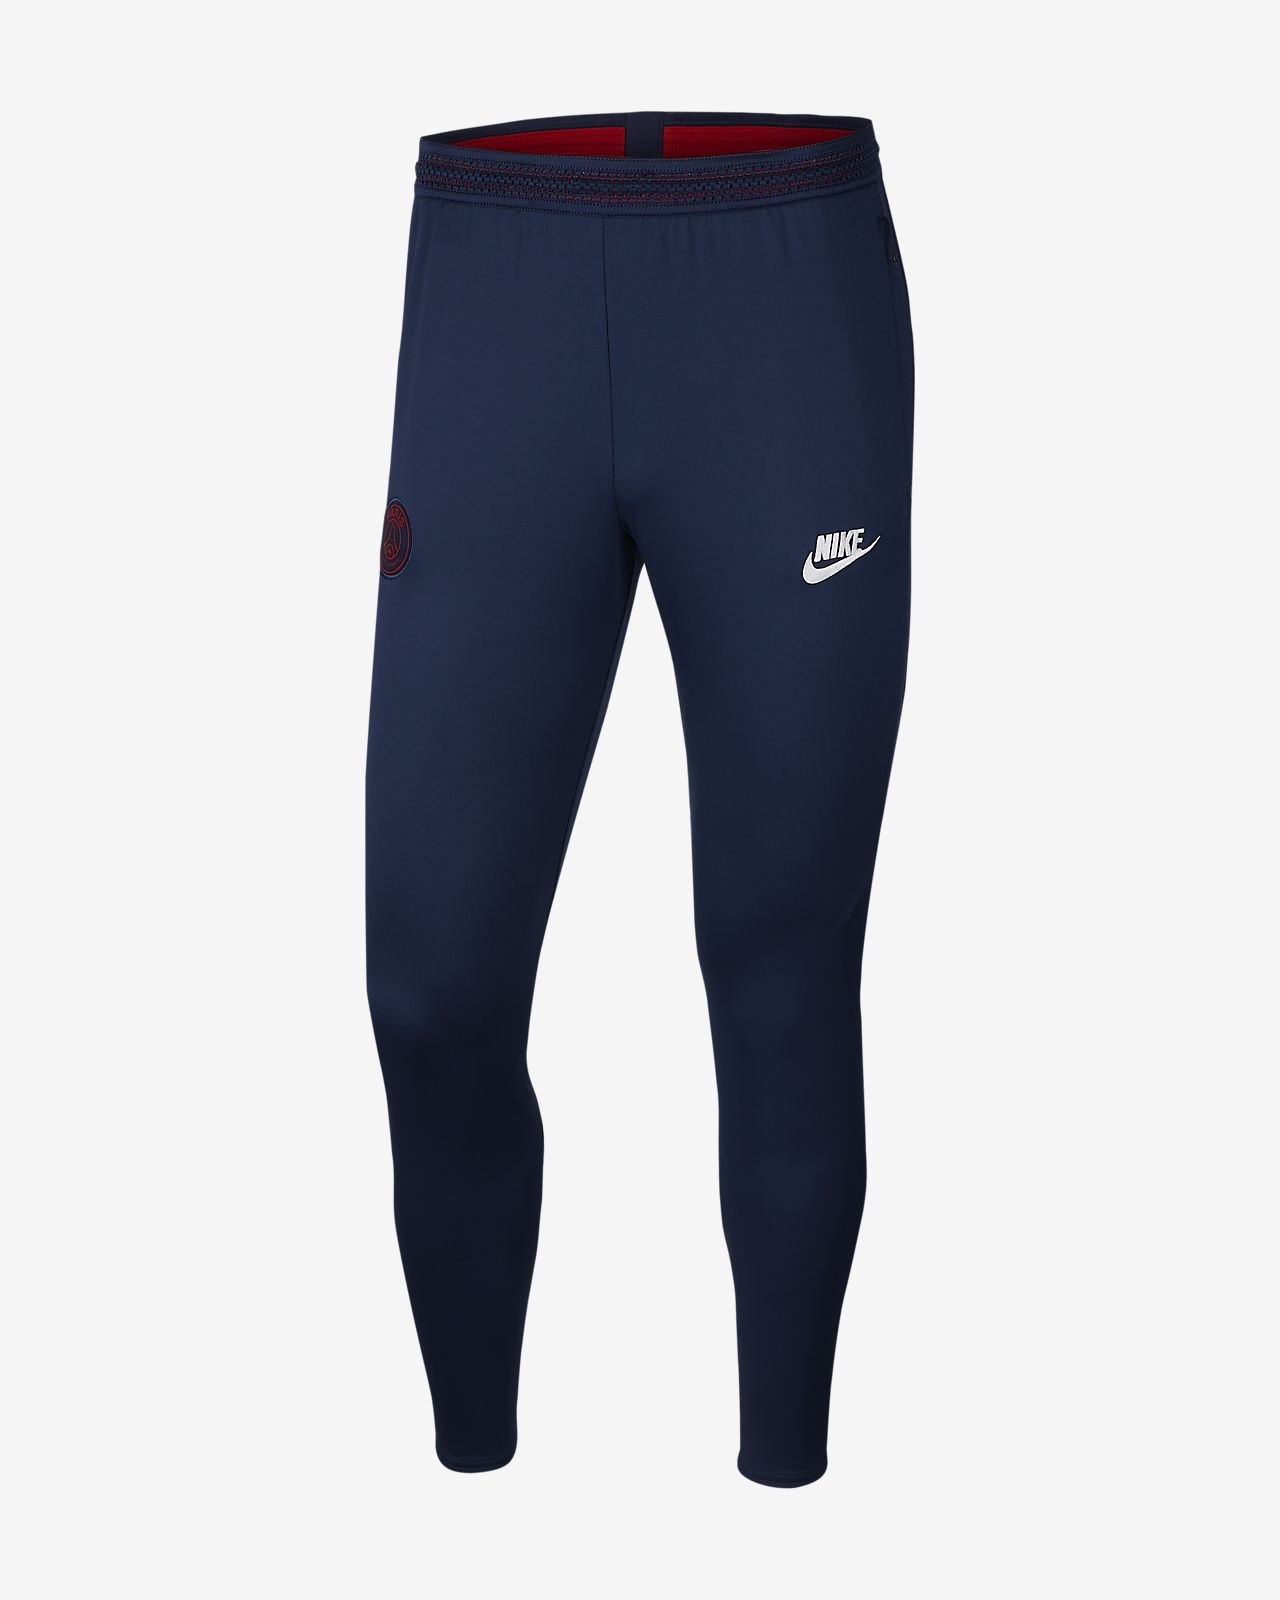 Paris Saint-Germain Strike Men's Football Pants